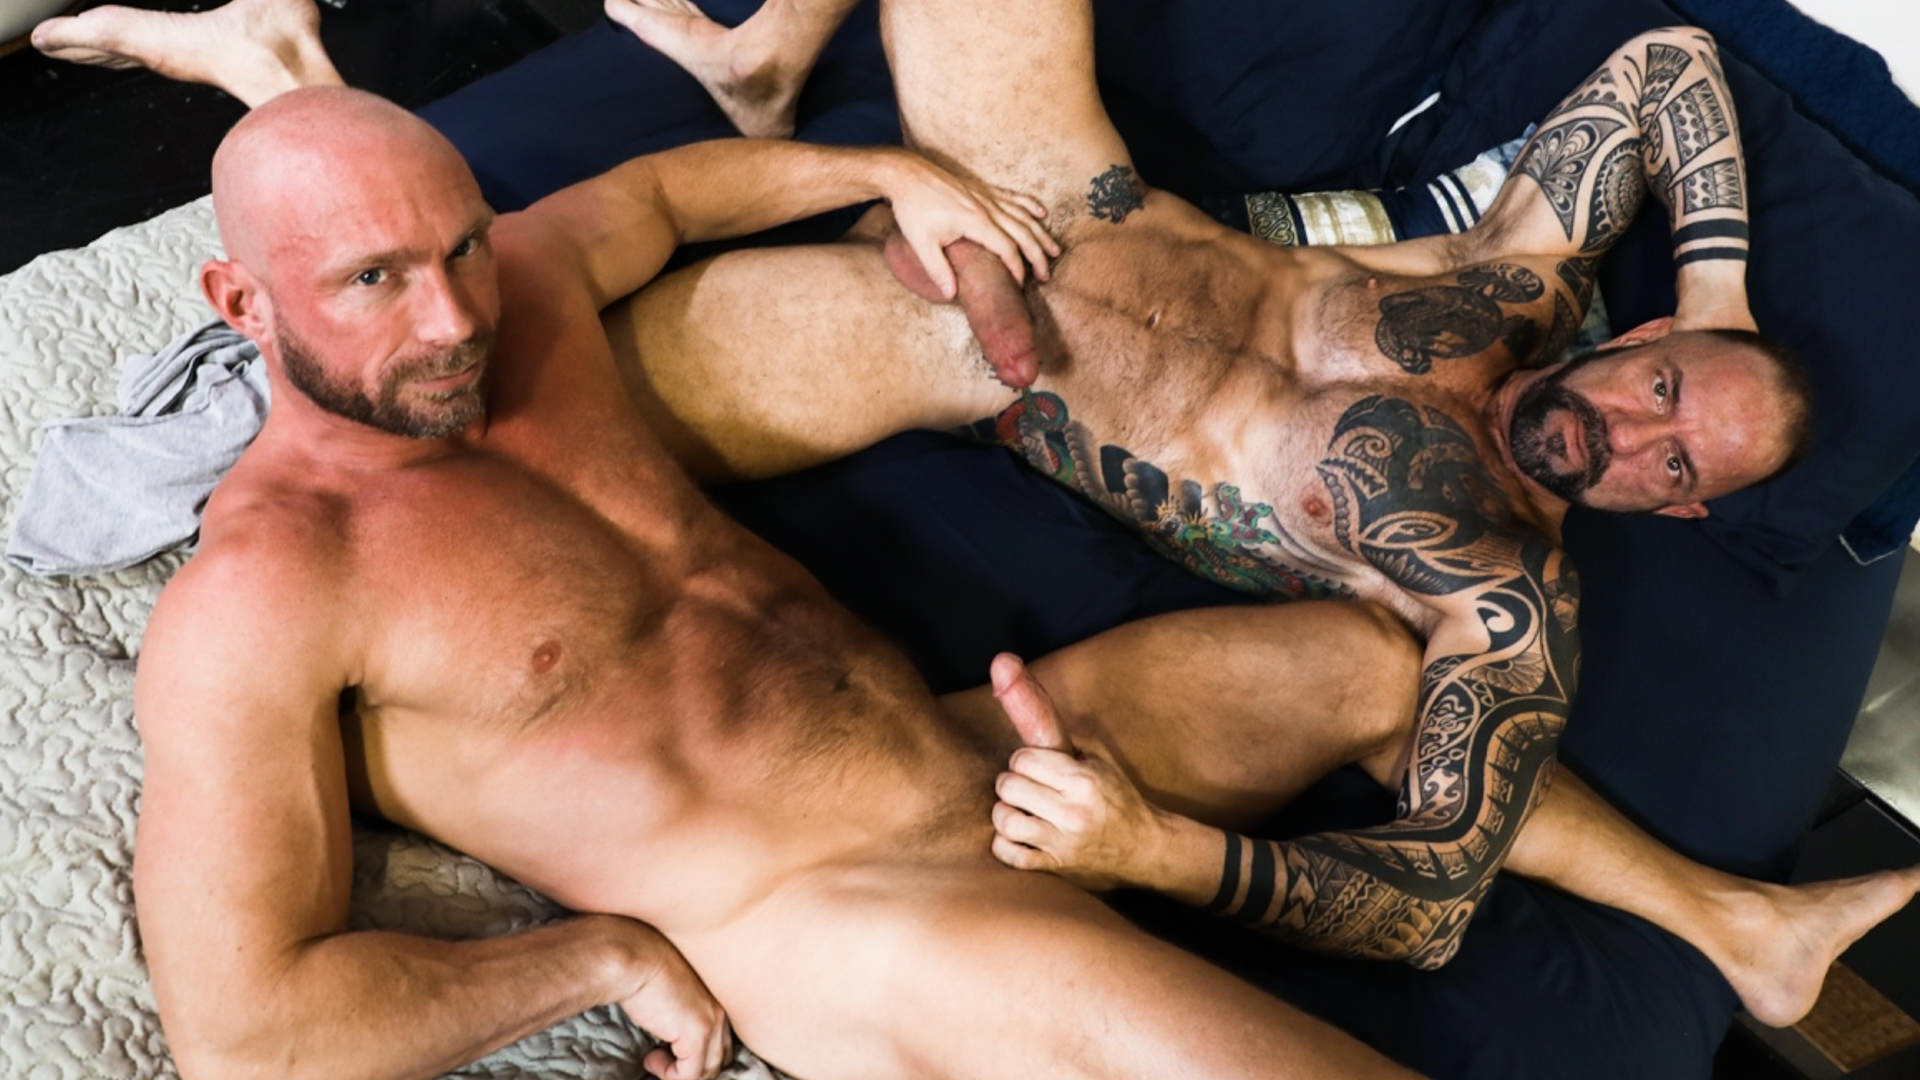 Men for Men Blog 74497_01_01 Hairy hunks fucking Vic Rocco drives his big cock deep inside Killian Knox's smooth bubble ass Extra Big Dicks